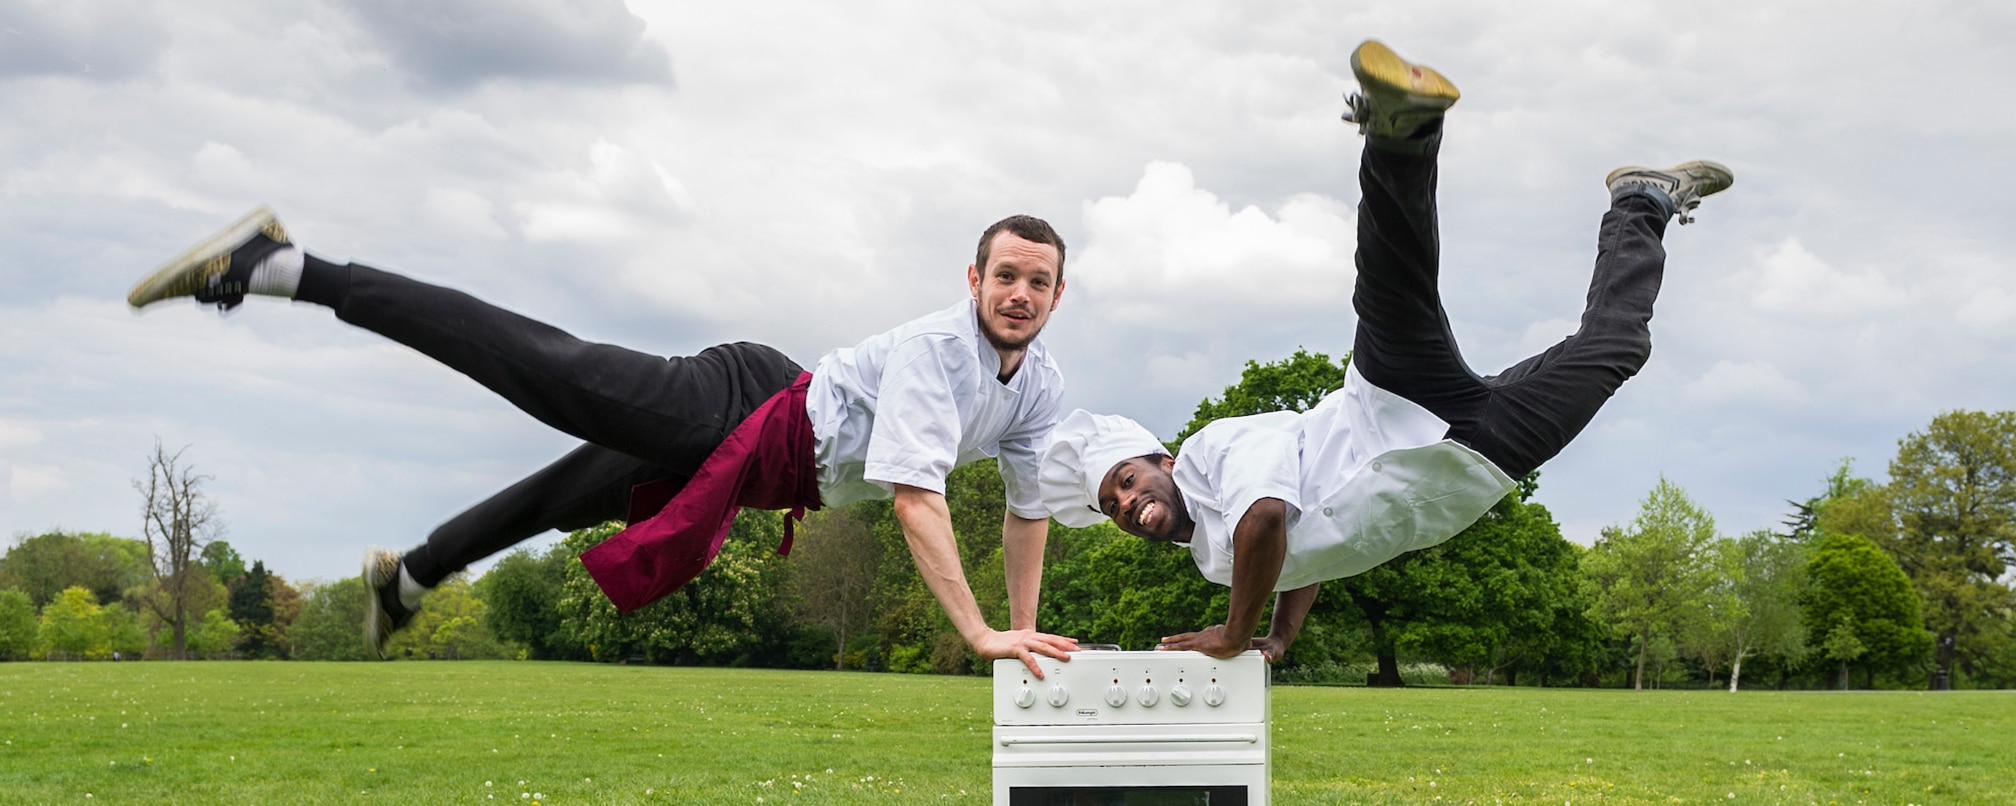 Two mean leaping in the air in chef's attire leaning on a cooker